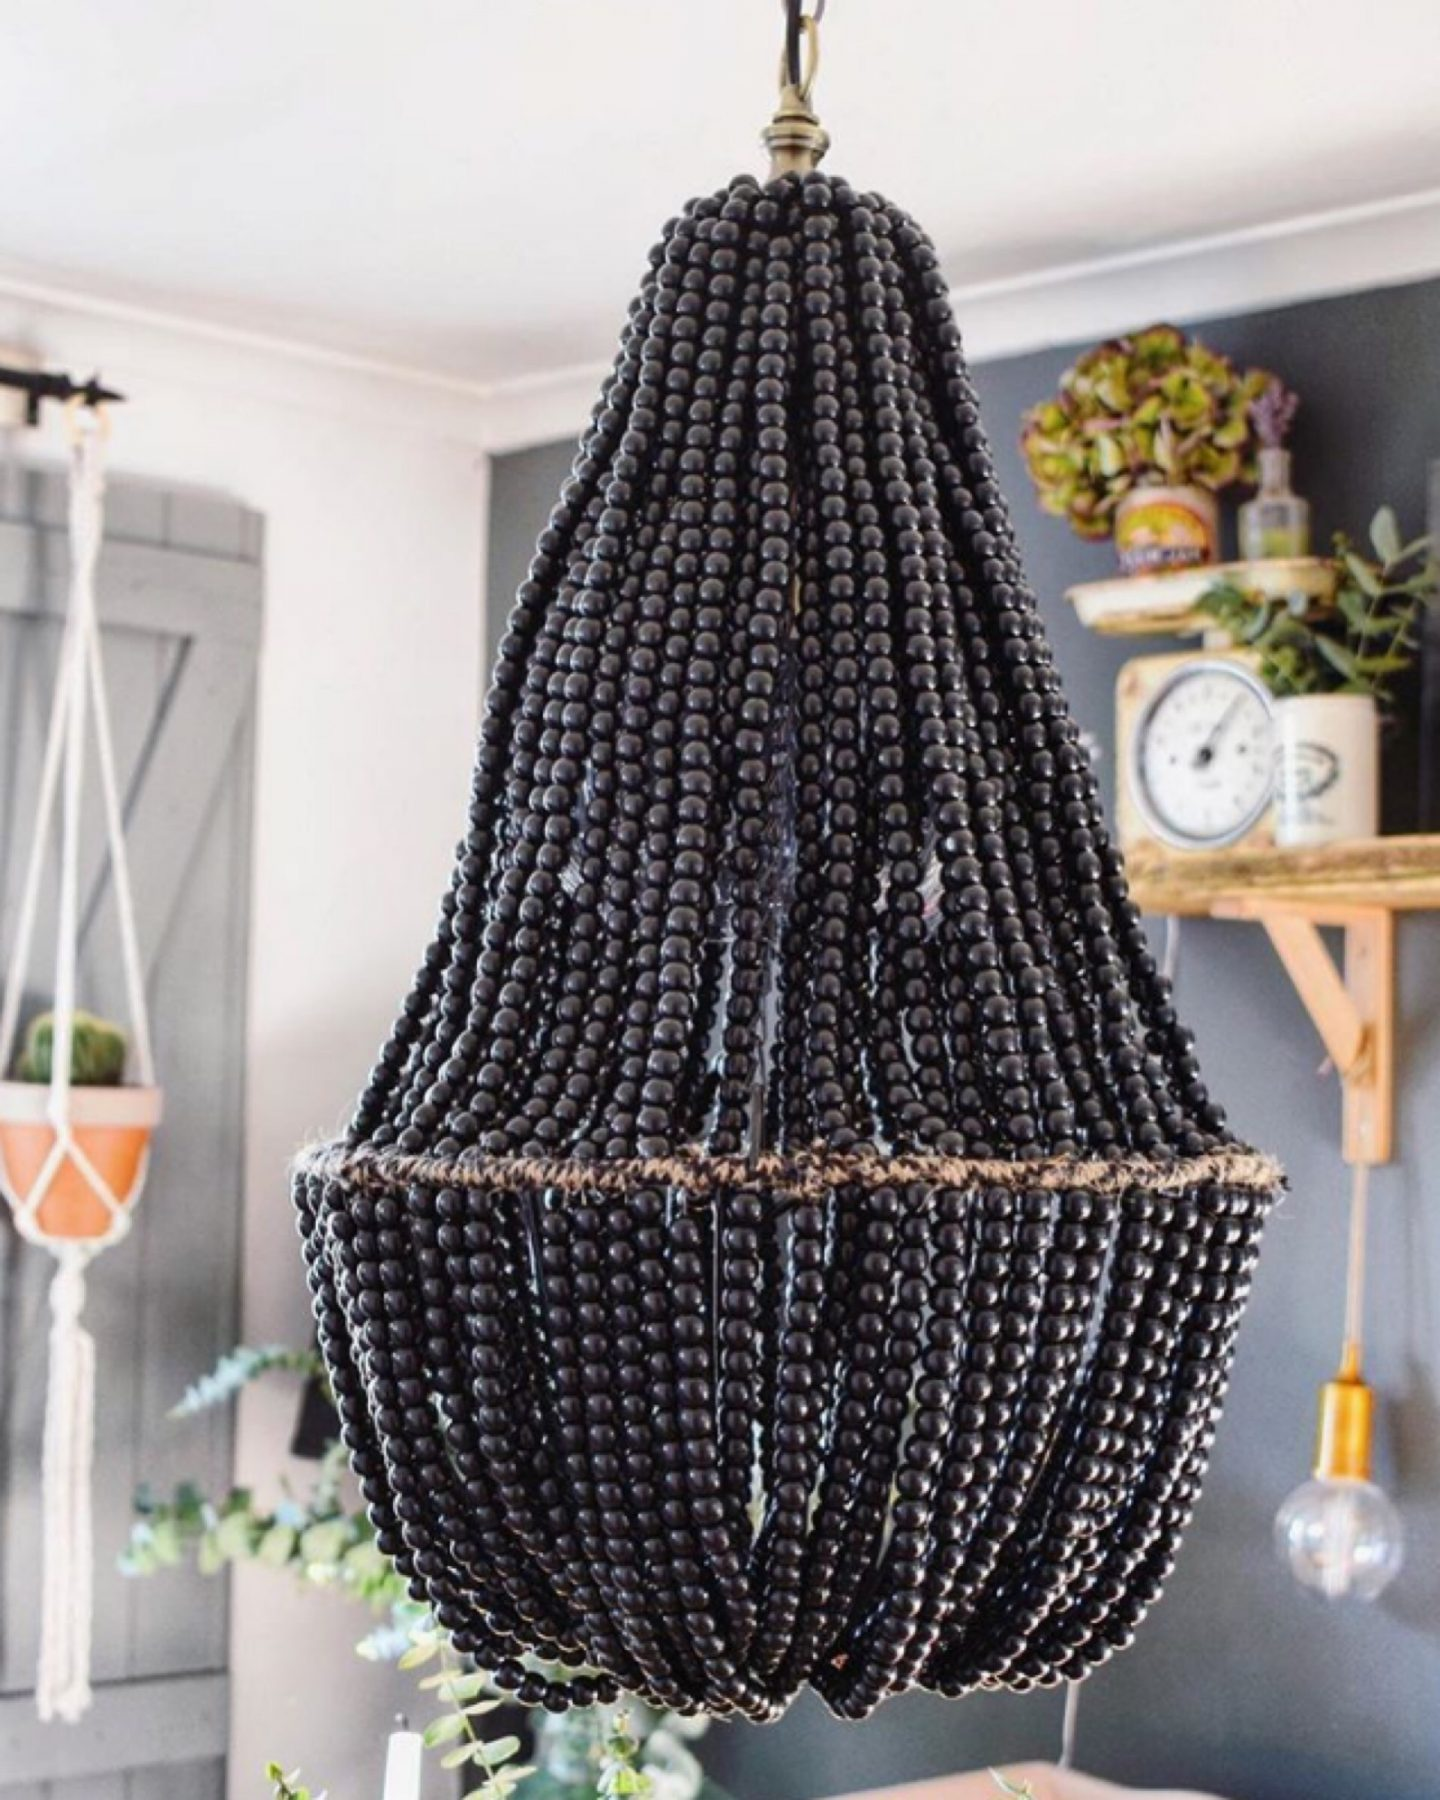 How to make a beaded chandelier…